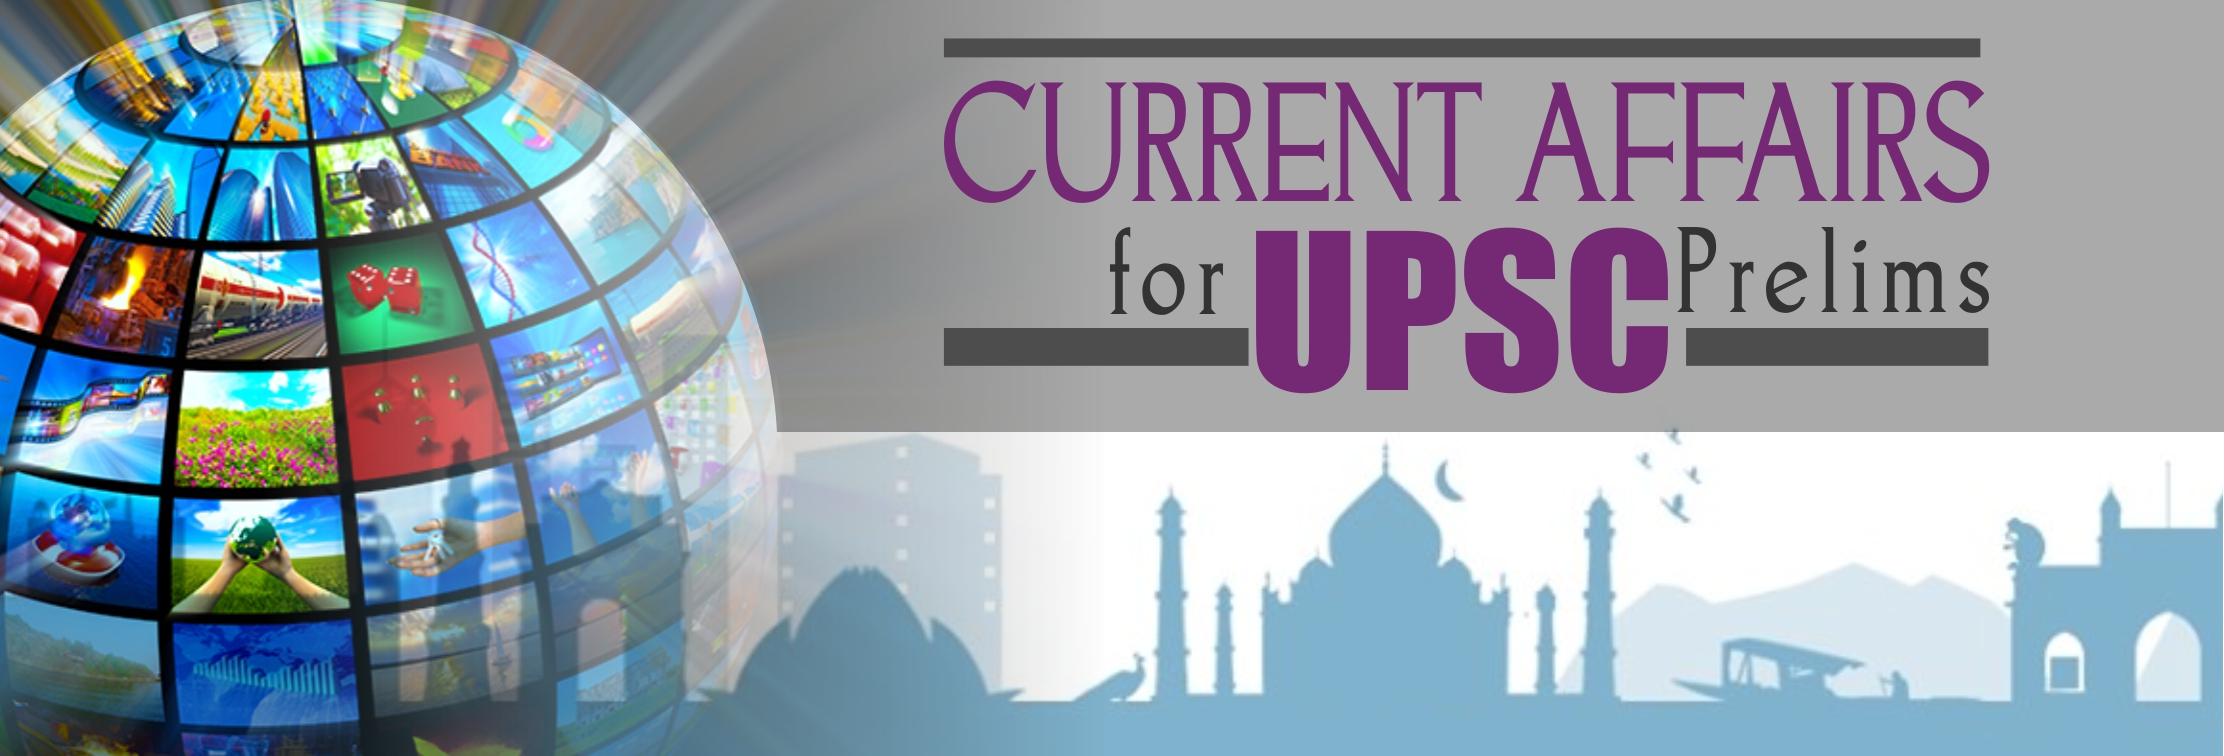 current affairs for the upsc prelims byjus current affairs for upsc prelims